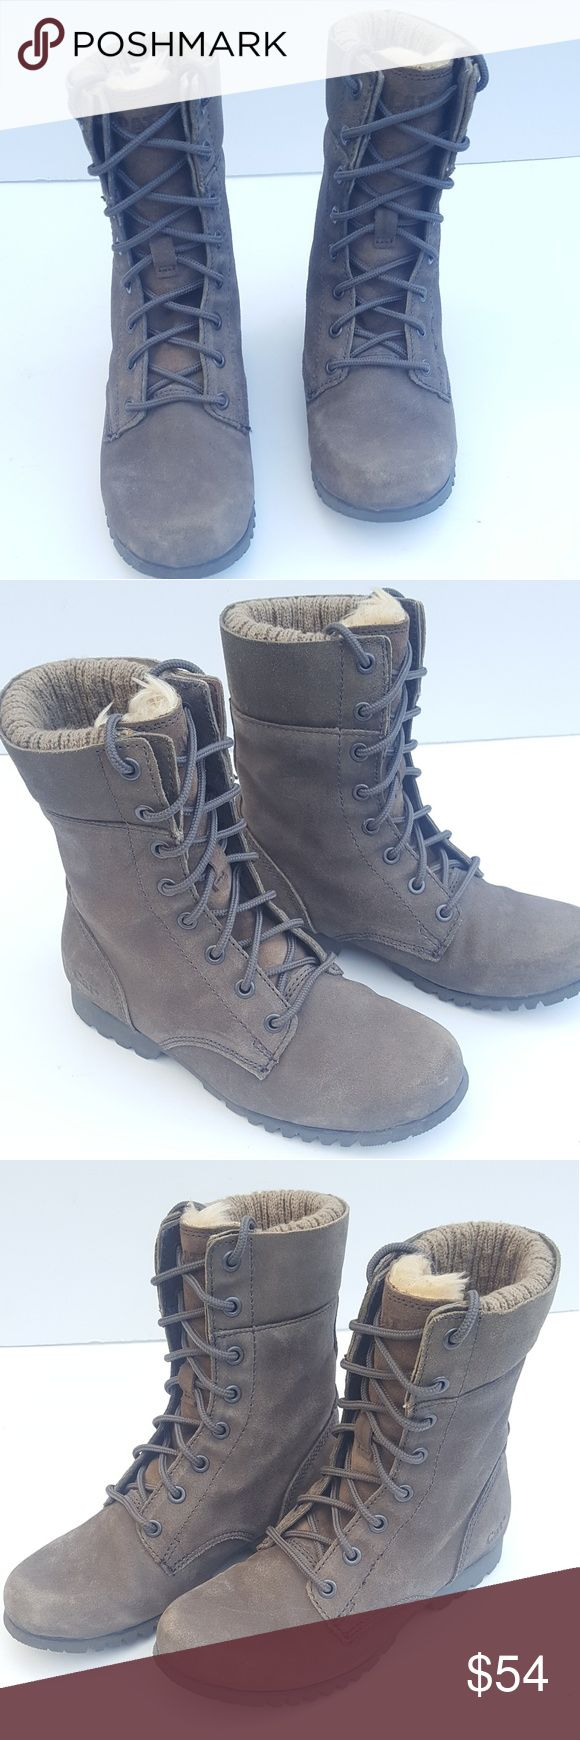 """Womens Leather Boots (7) Cat by Caterpillar NICE! Womens Fur Lined Leather Boots (7) Cat by Caterpillar. Olive Green 1"""" Heel, 7.5"""" up. Hardly Worn, Great Quality, Great Condition, No Issues!  Pet Friendly Pet Free Smoke Free Home! *FAST SHIPPING * Caterpillar Shoes Winter & Rain Boots"""